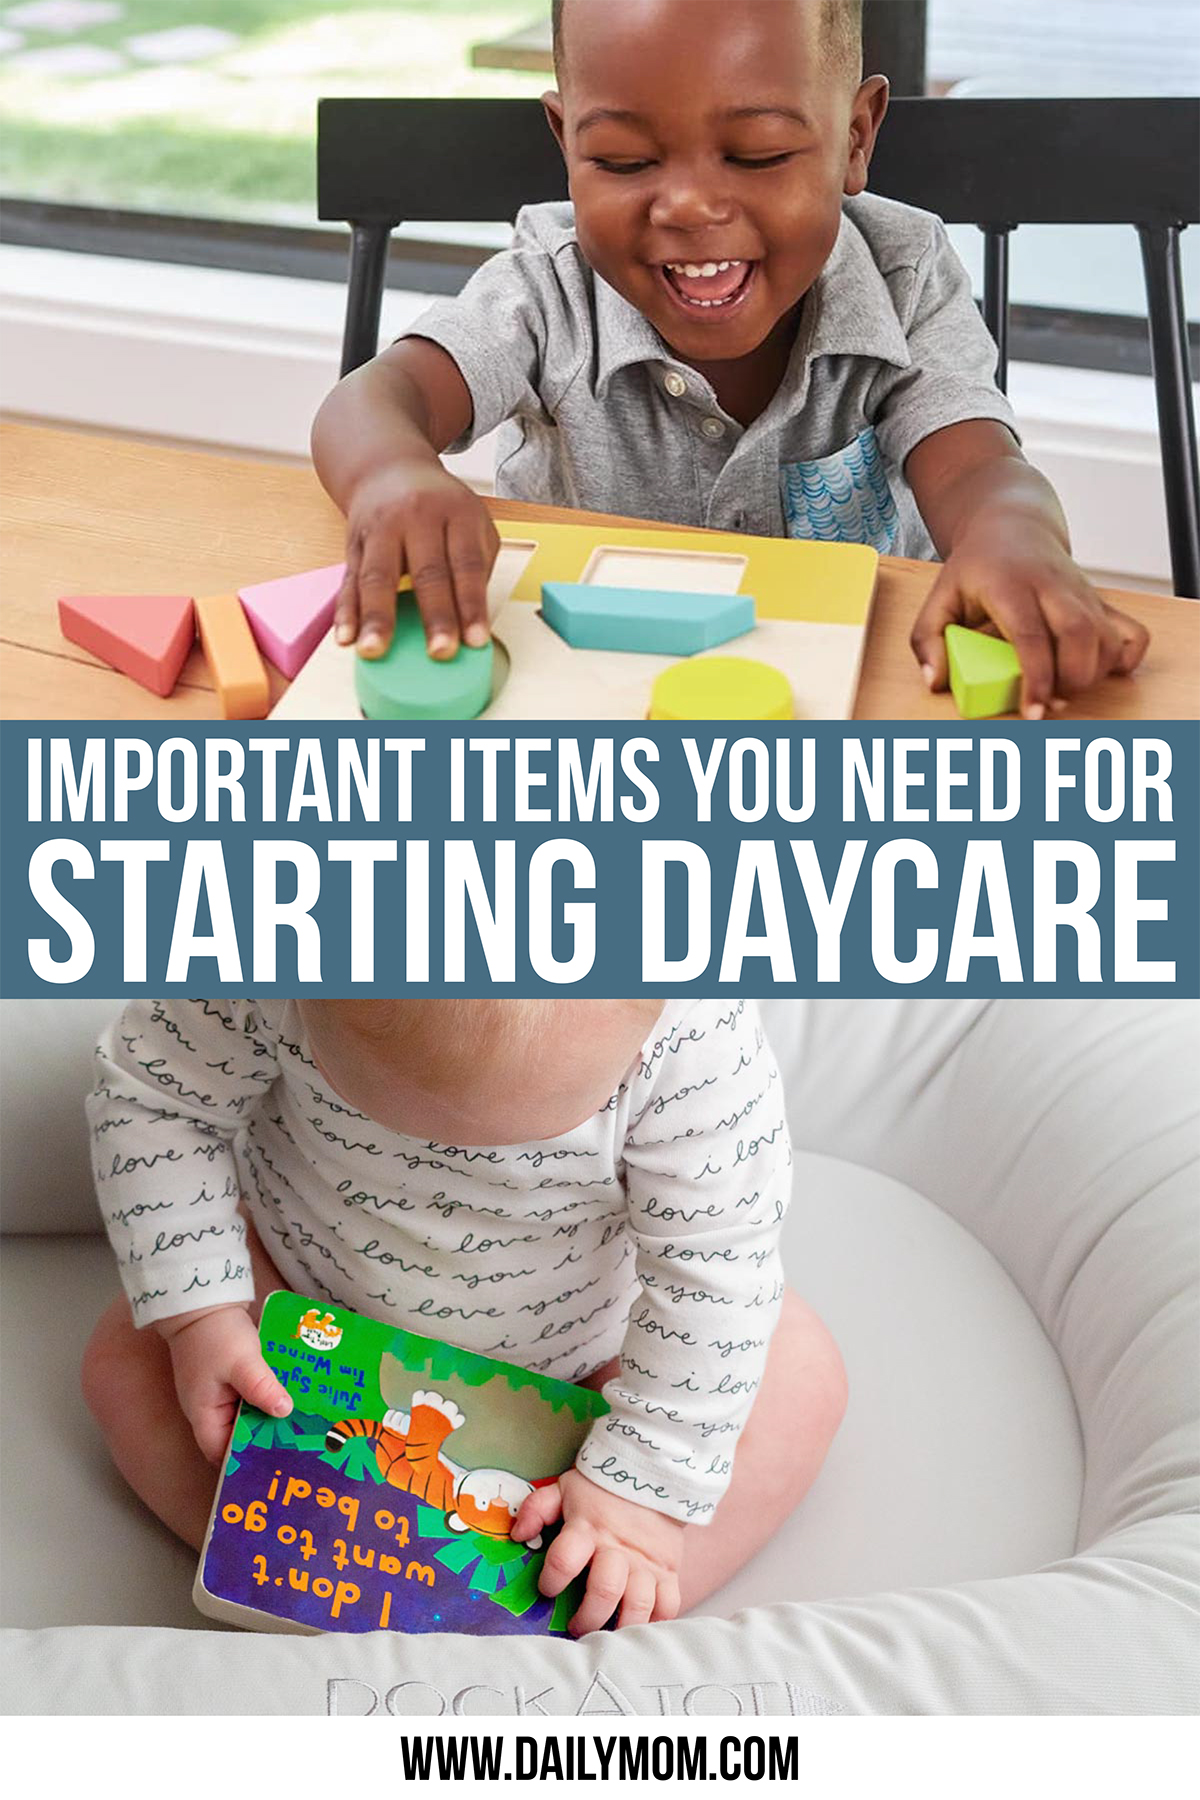 Starting Daycare: 18 Important Items You Need!